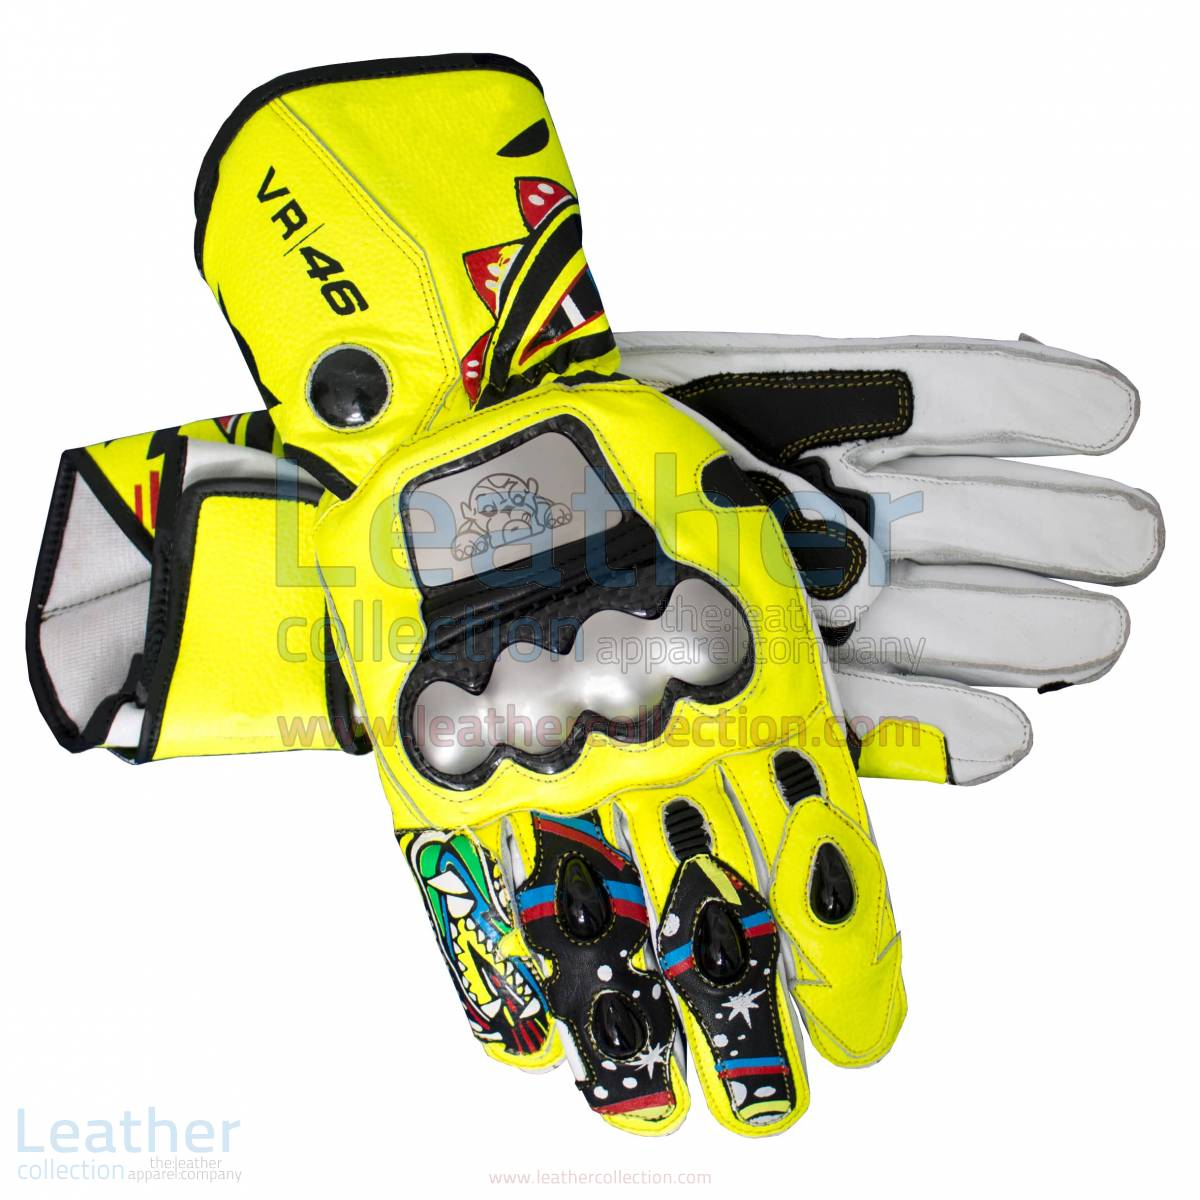 Valentino Rossi 2010 Motorcycle Gloves – Ducati Gloves